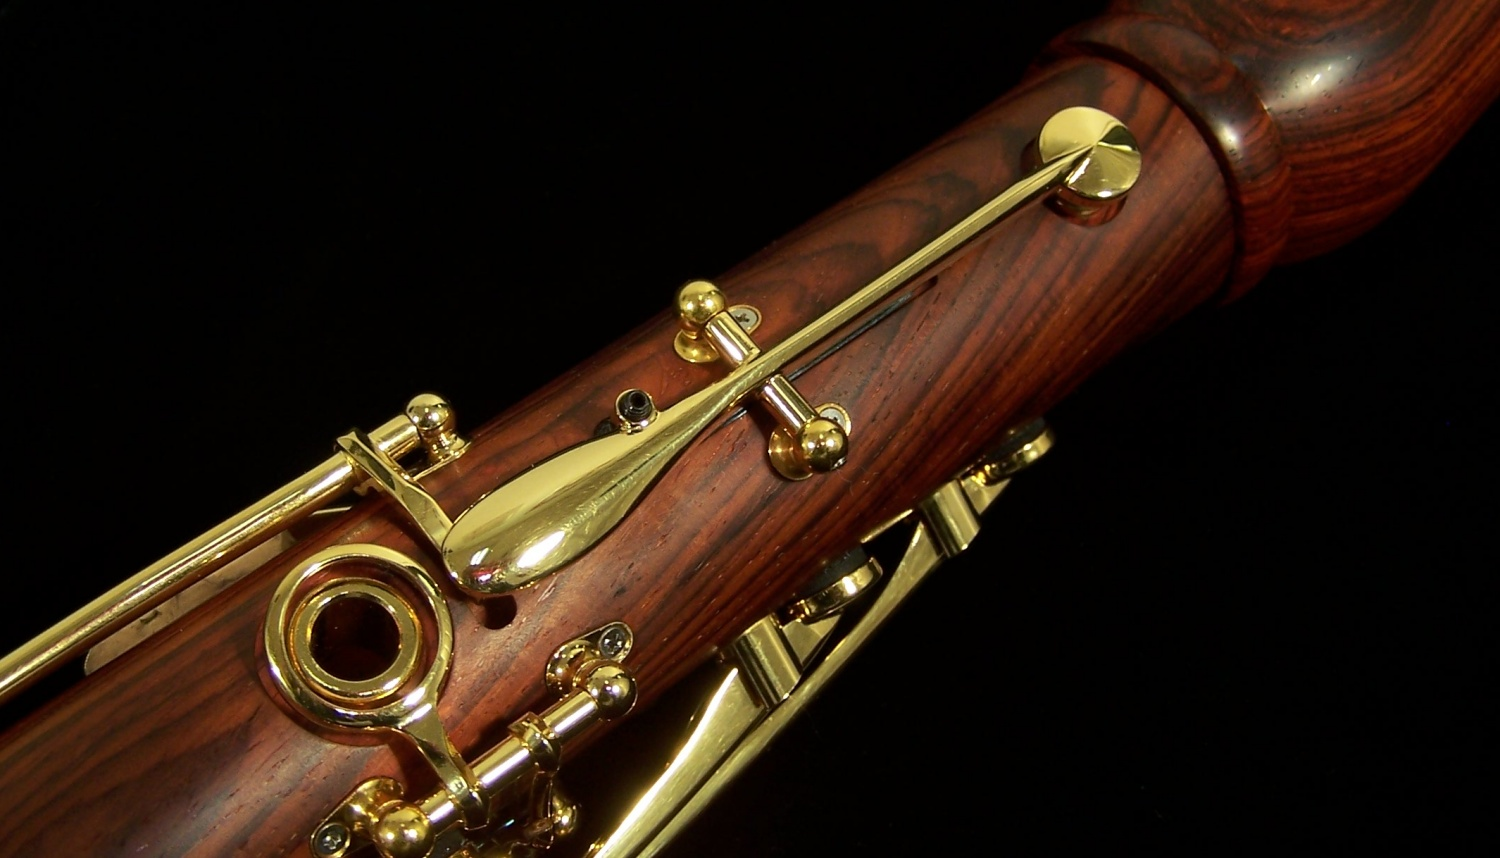 Alto Clarinet The Alto Clarinet is a larger clarinet in Eflat pitched a major sixth below the written notes Traditionally this has been the instrument used in the